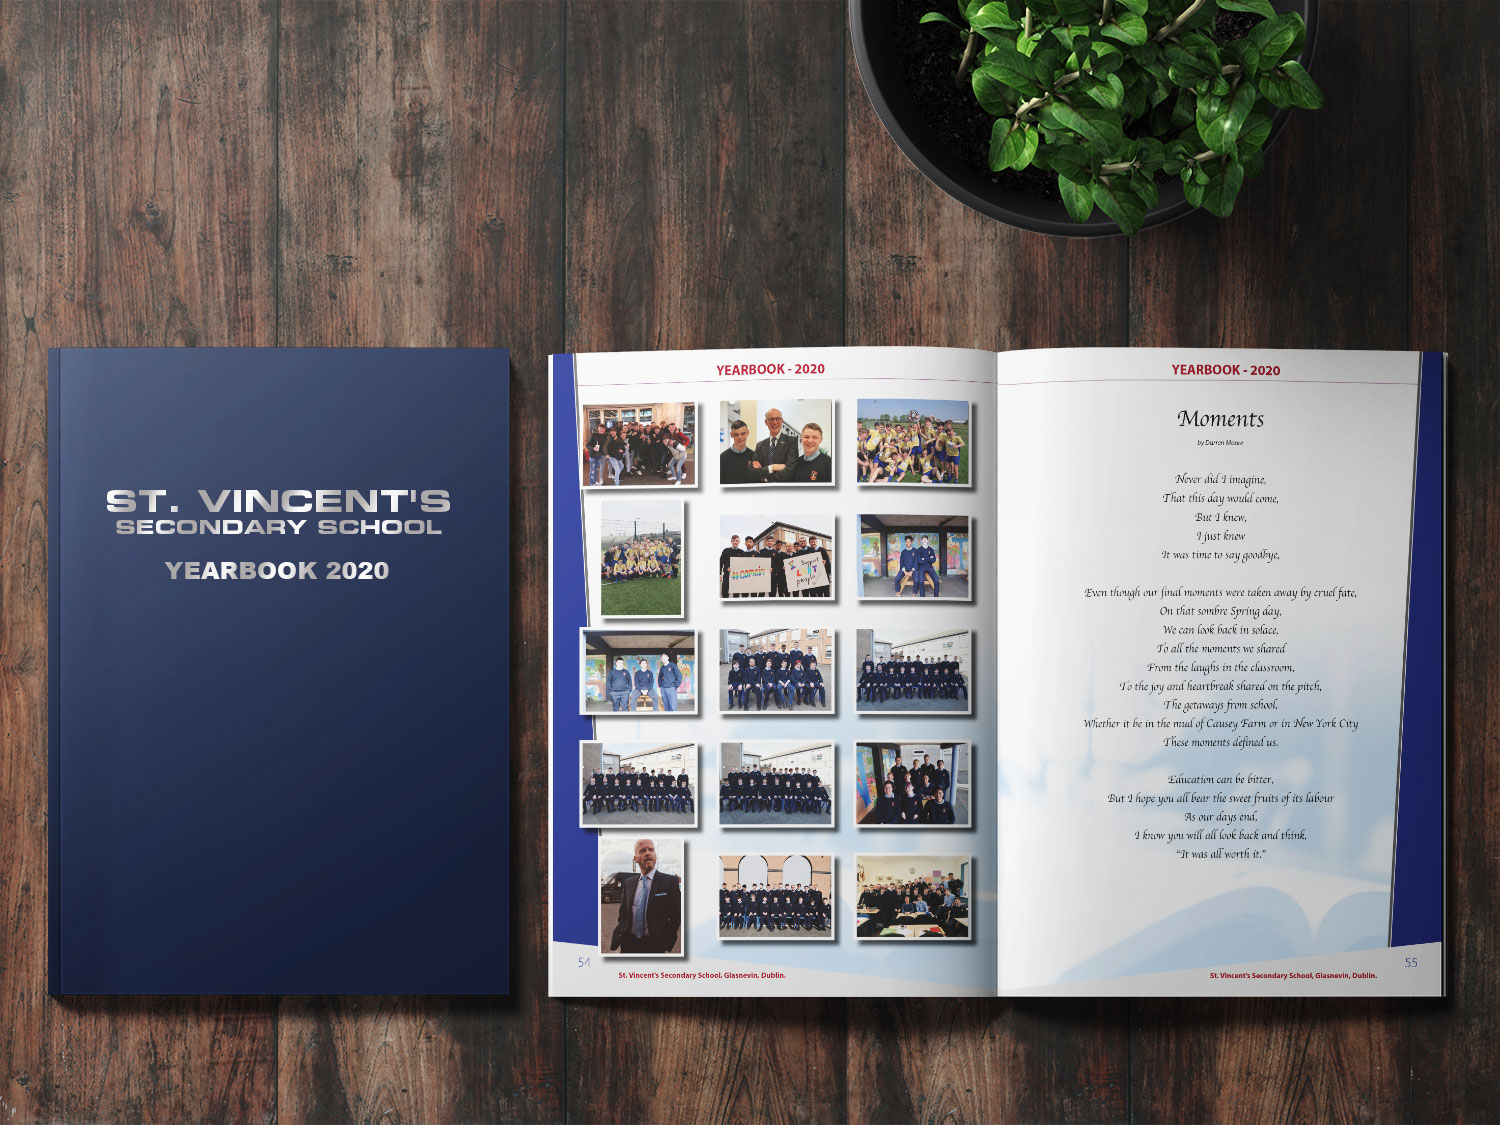 St. Vincent's Yearbook